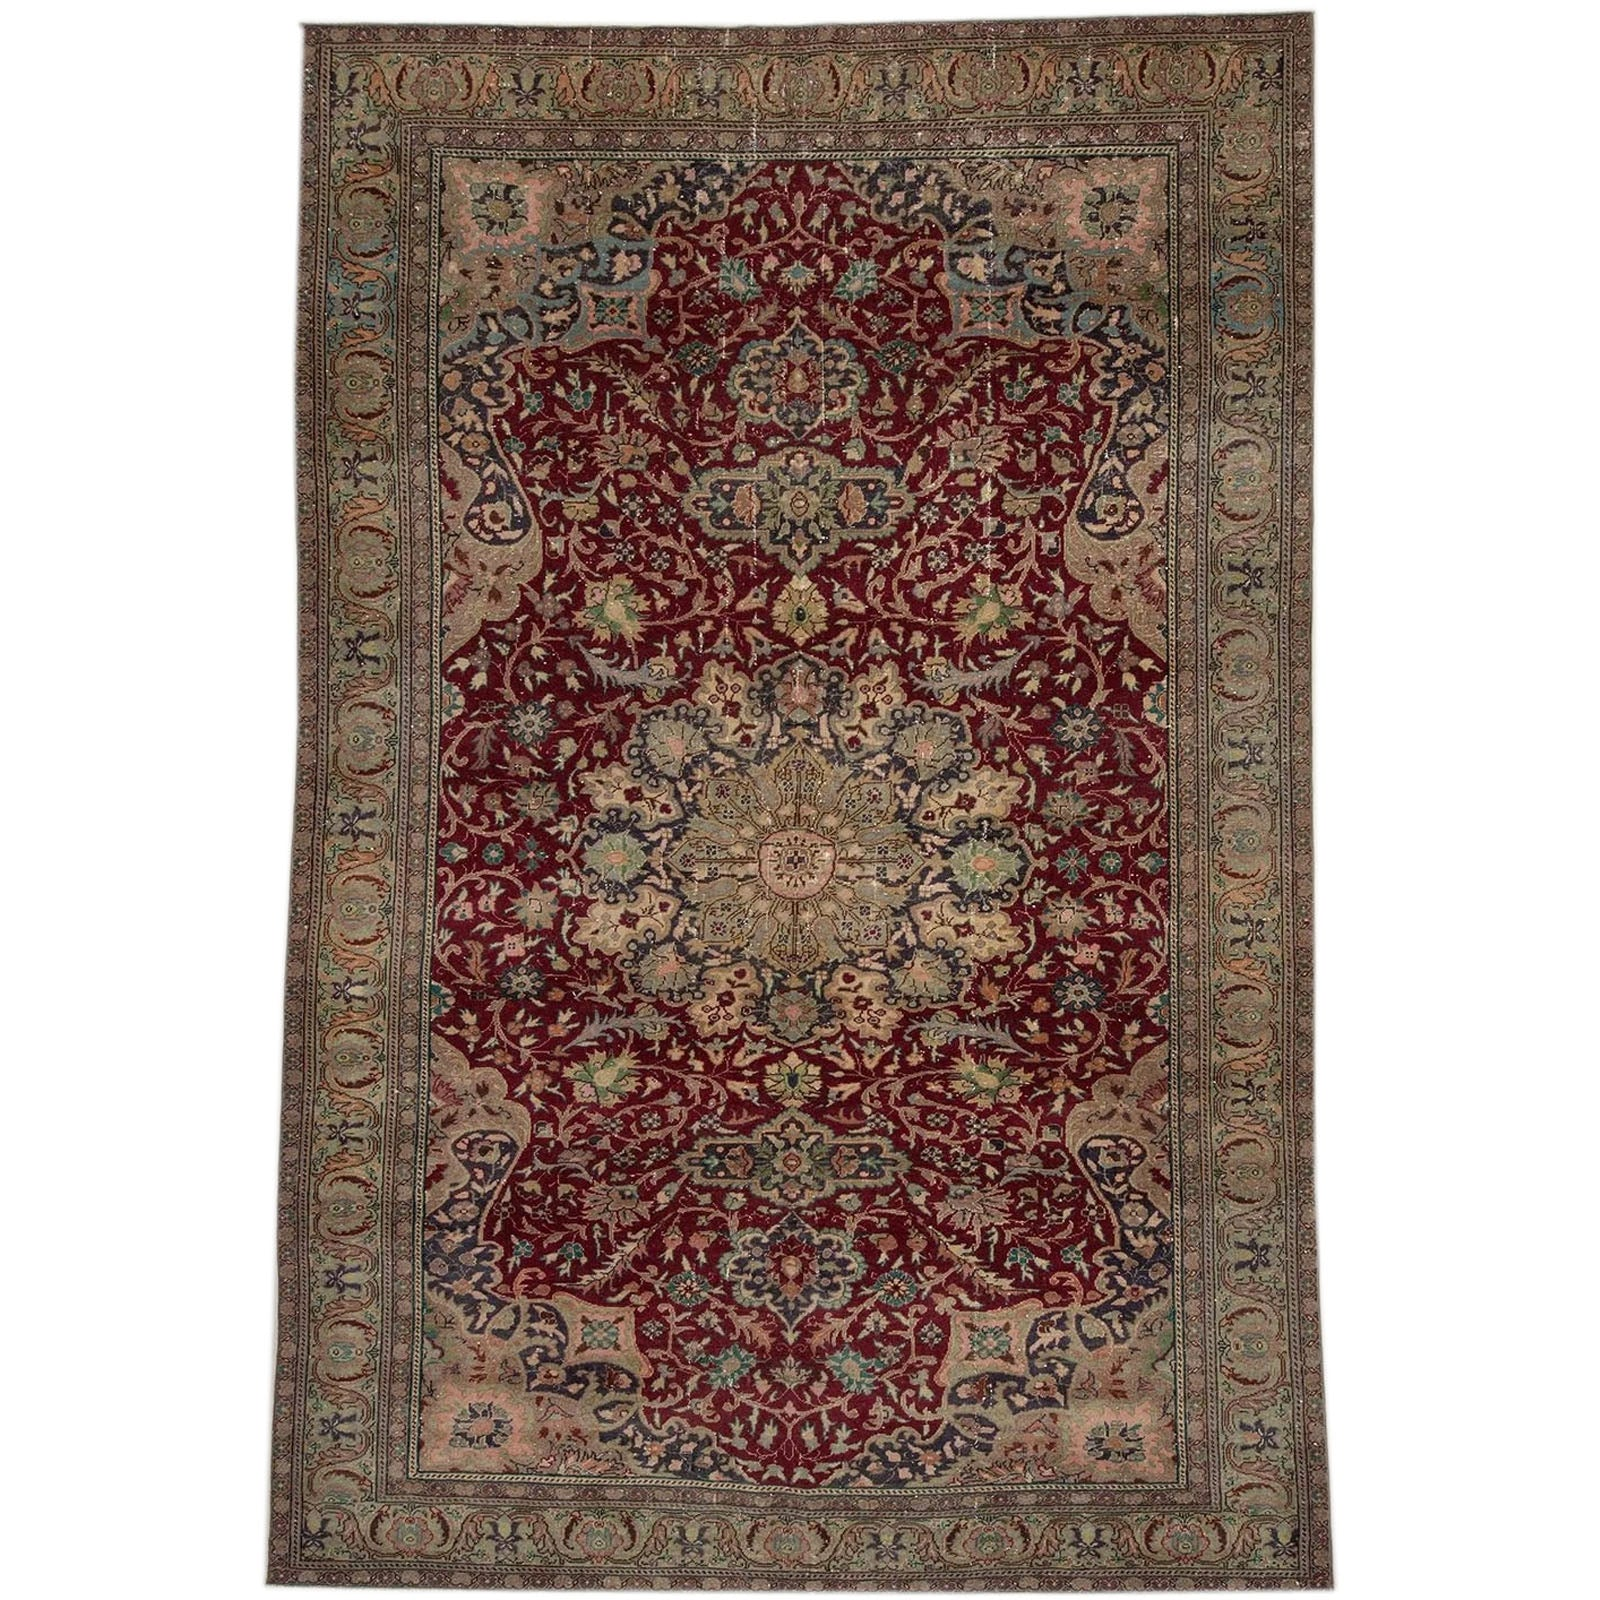 Hali 188X288  CM Bursa Handmade over dyed rug  2528 -  188*288 سجاده بورصة صناعة يدوية على بساط مصبوغ - Shop Online Furniture and Home Decor Store in Dubai, UAE at ebarza